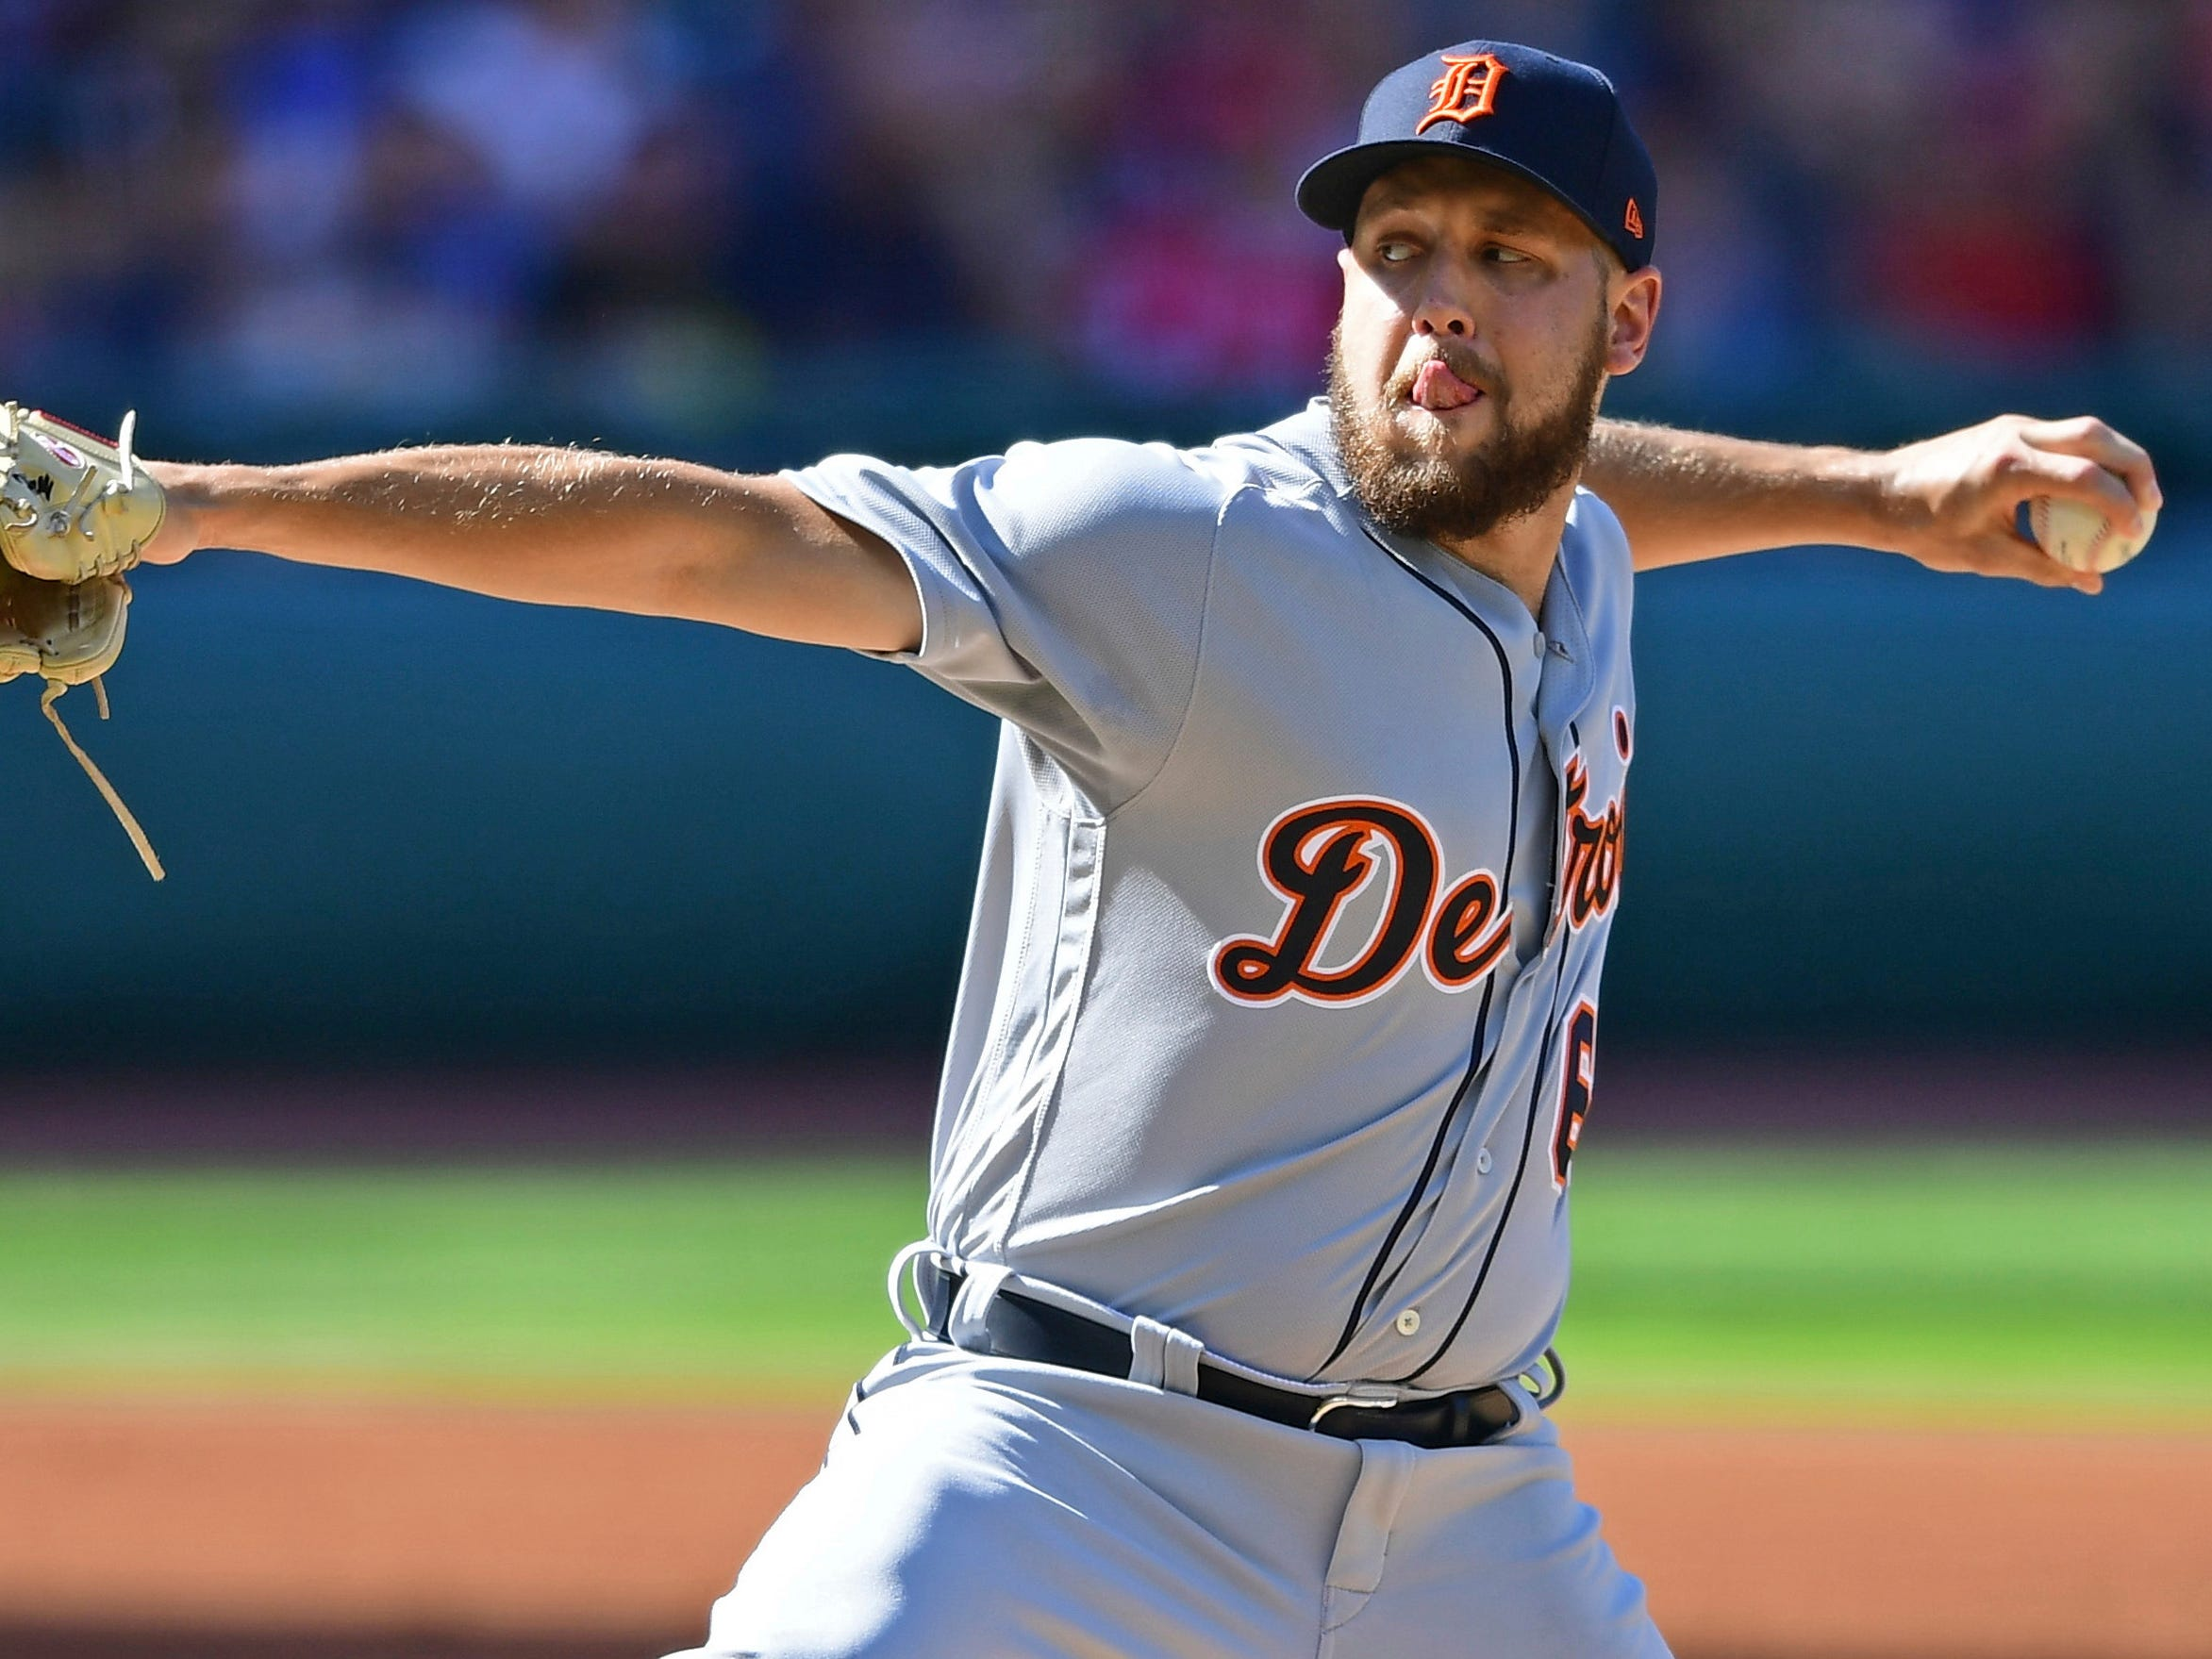 Tigers pitcher Matt Hall delivers in the first inning on Saturday, Sept.15, 2018, in Cleveland.